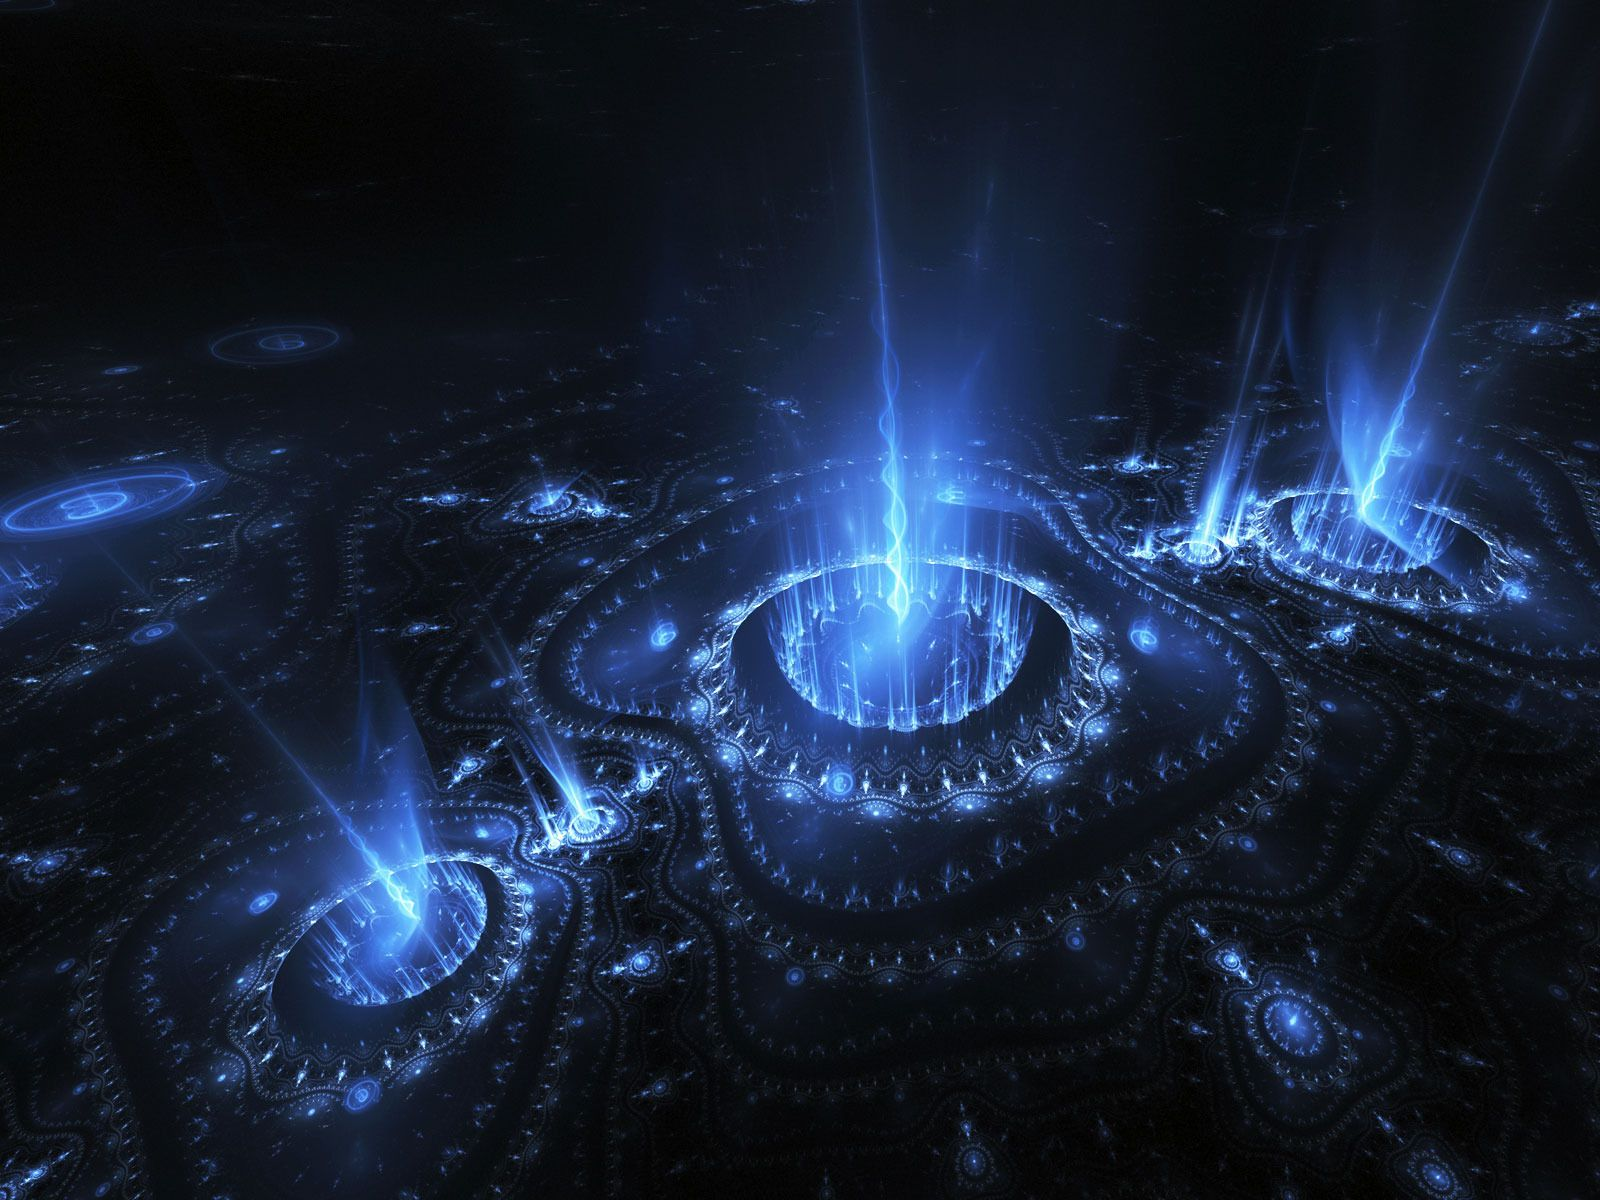 3d Space Background Wallpaper: 3D Space Background Wallpaper